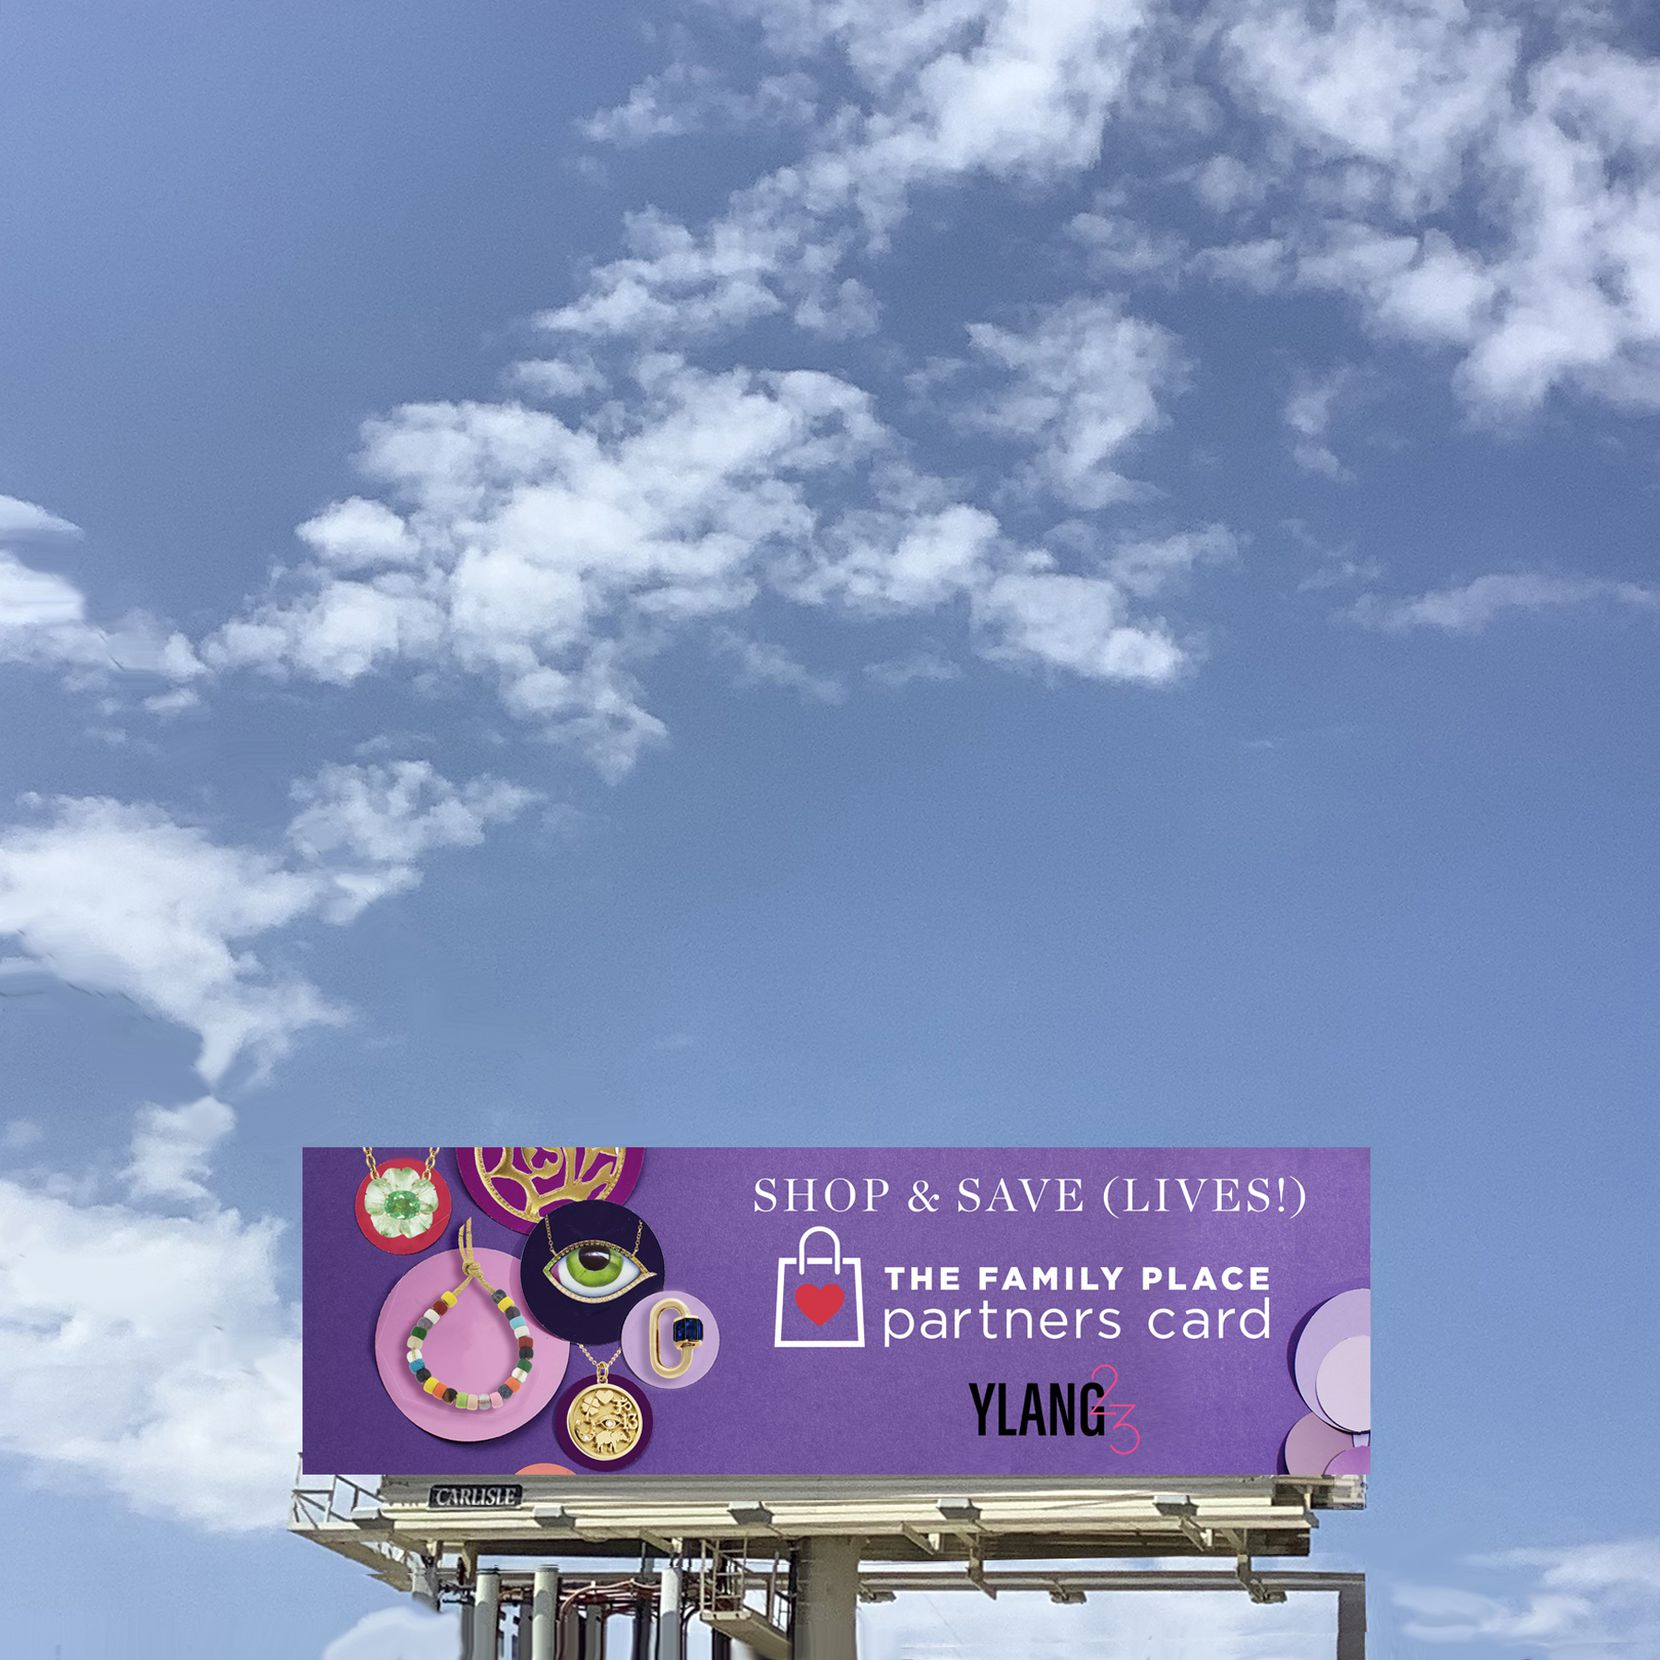 There weren't as many commuters during this year's drive, but the familiar billboard prominently placed by Dallas jewelry retailer Ylang 23 was still up to promote The Family Place Partners Card.